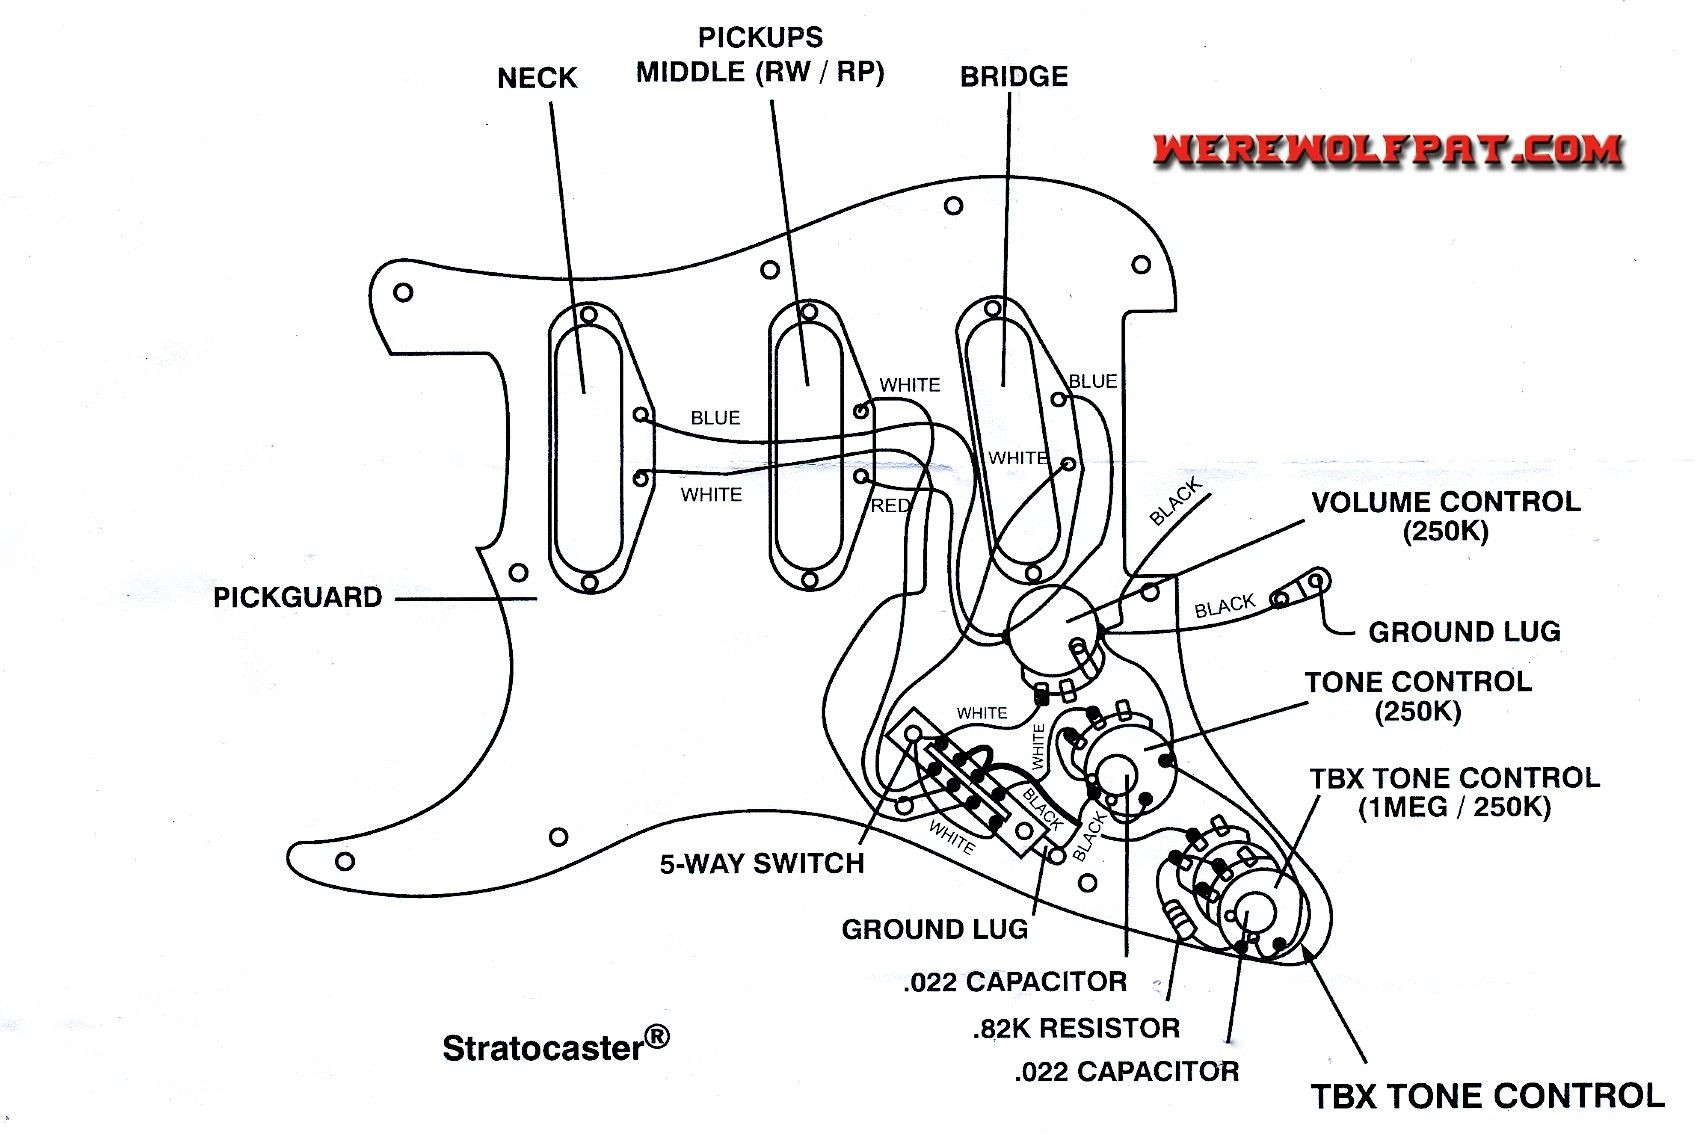 Fender S-1 Wiring Diagrams Fender Wiring Diagrams Electric Guitar Wiring Diagram Of Fender S-1 Wiring Diagrams